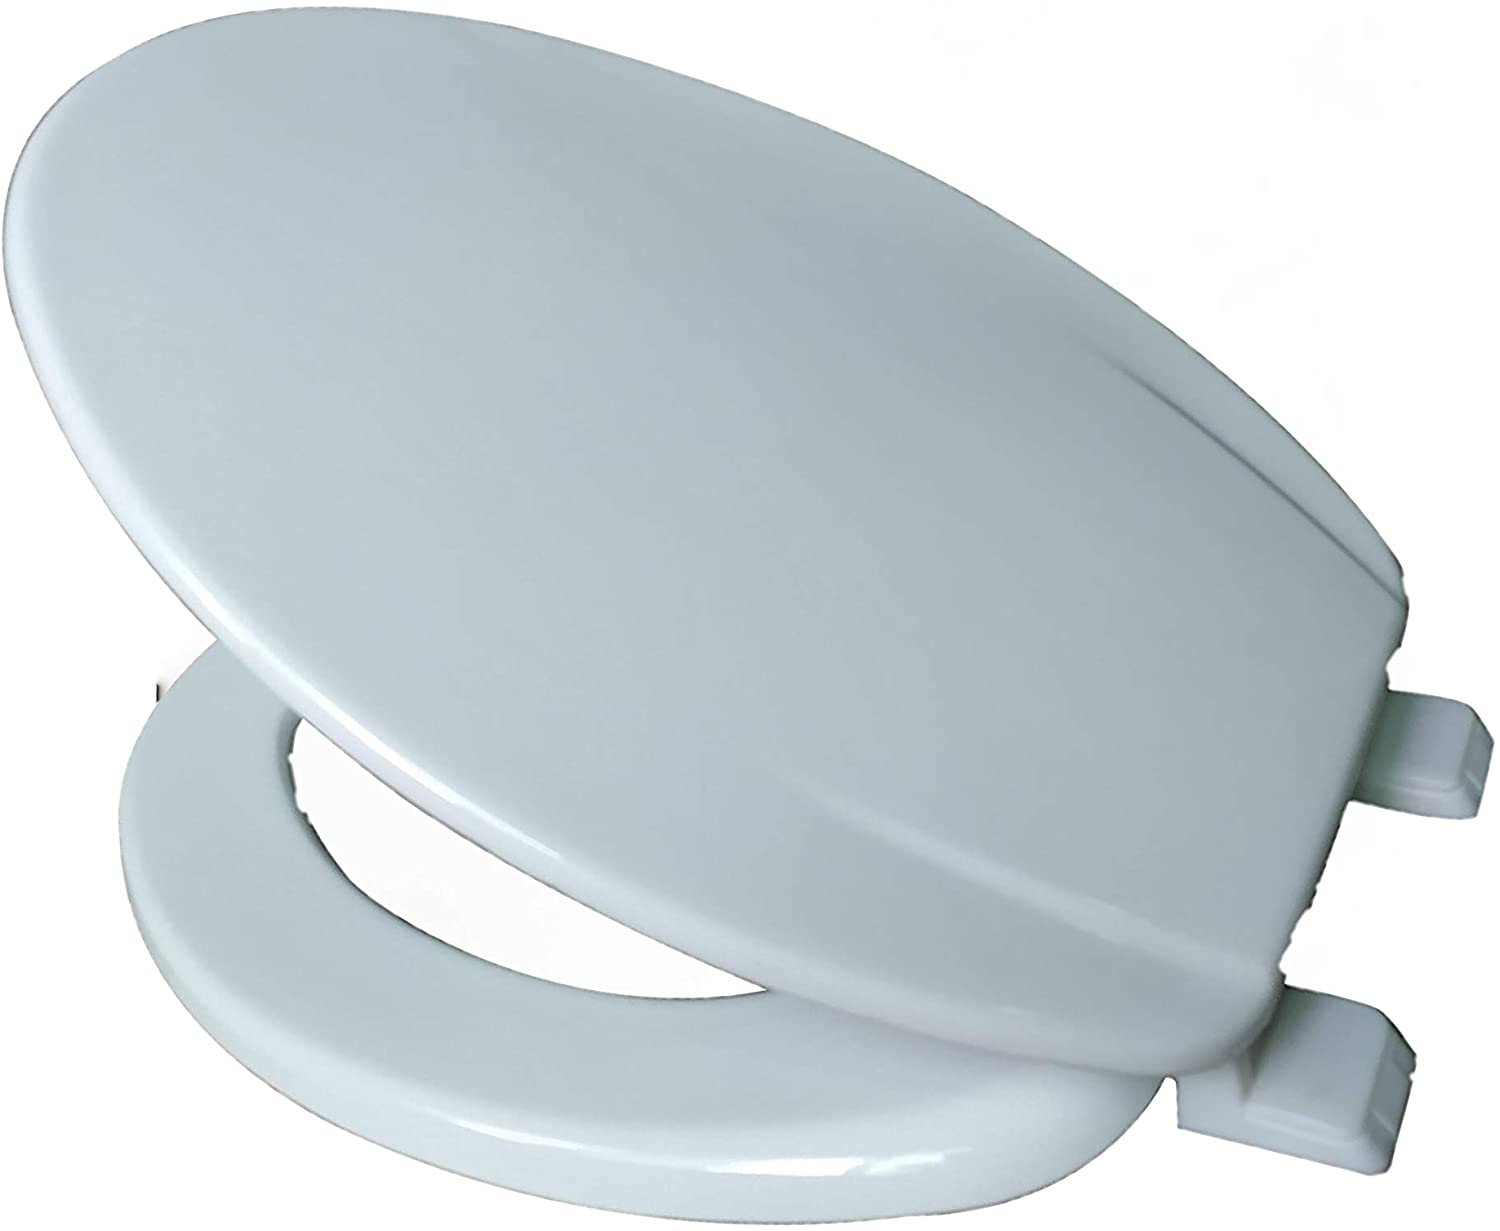 J&V Textiles Elongated Toilet Seat With Easy Clean & Change Hinge - J&V Textiles